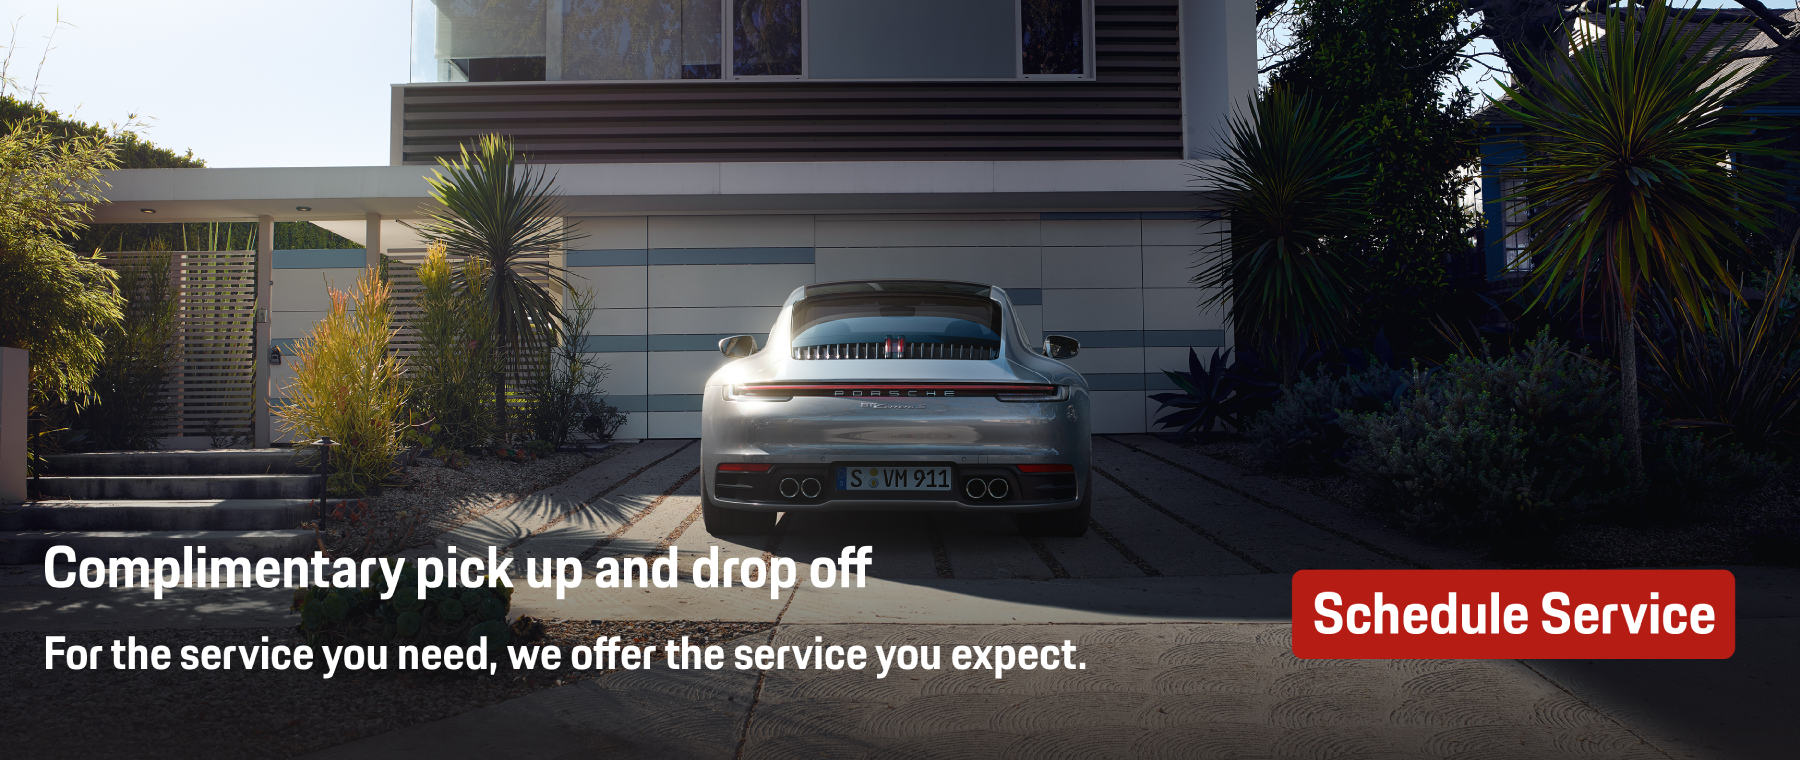 pick-up-drop-off-homepage